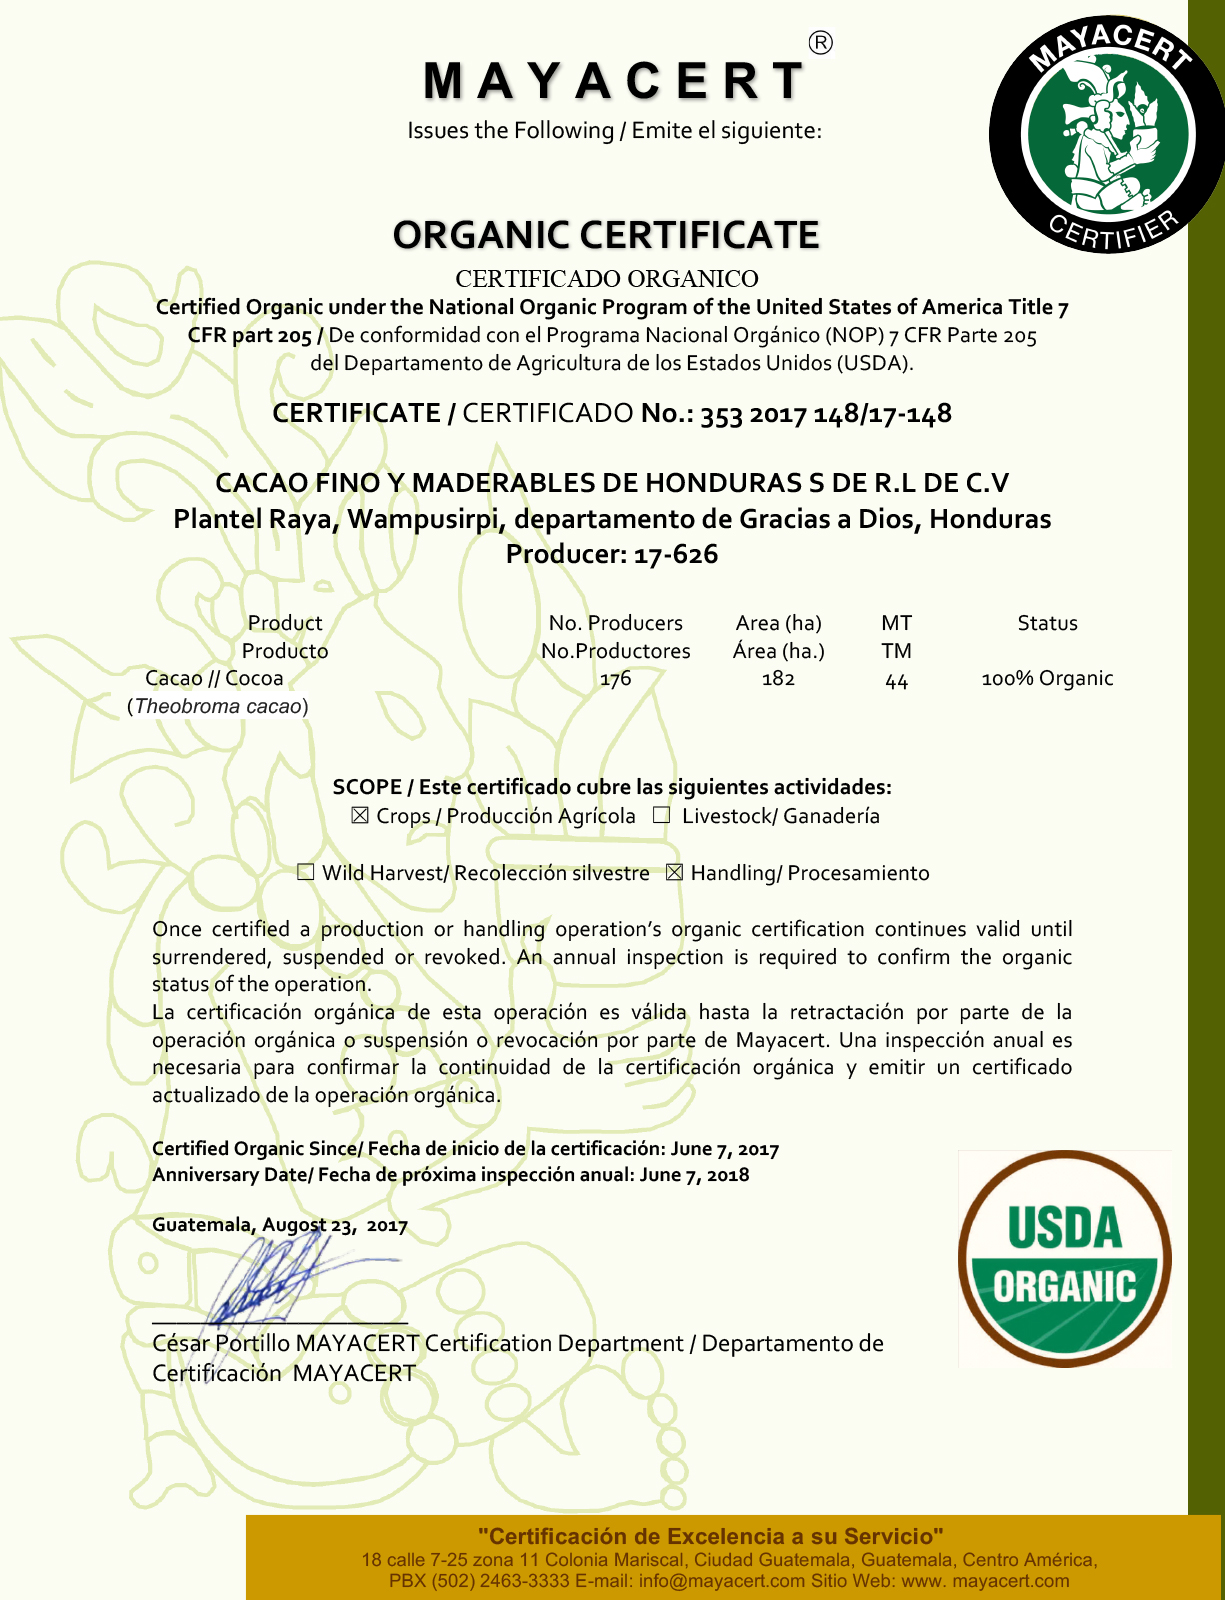 //cacao.direct/wp-content/uploads/2015/09/USDA-Organic-1.jpg